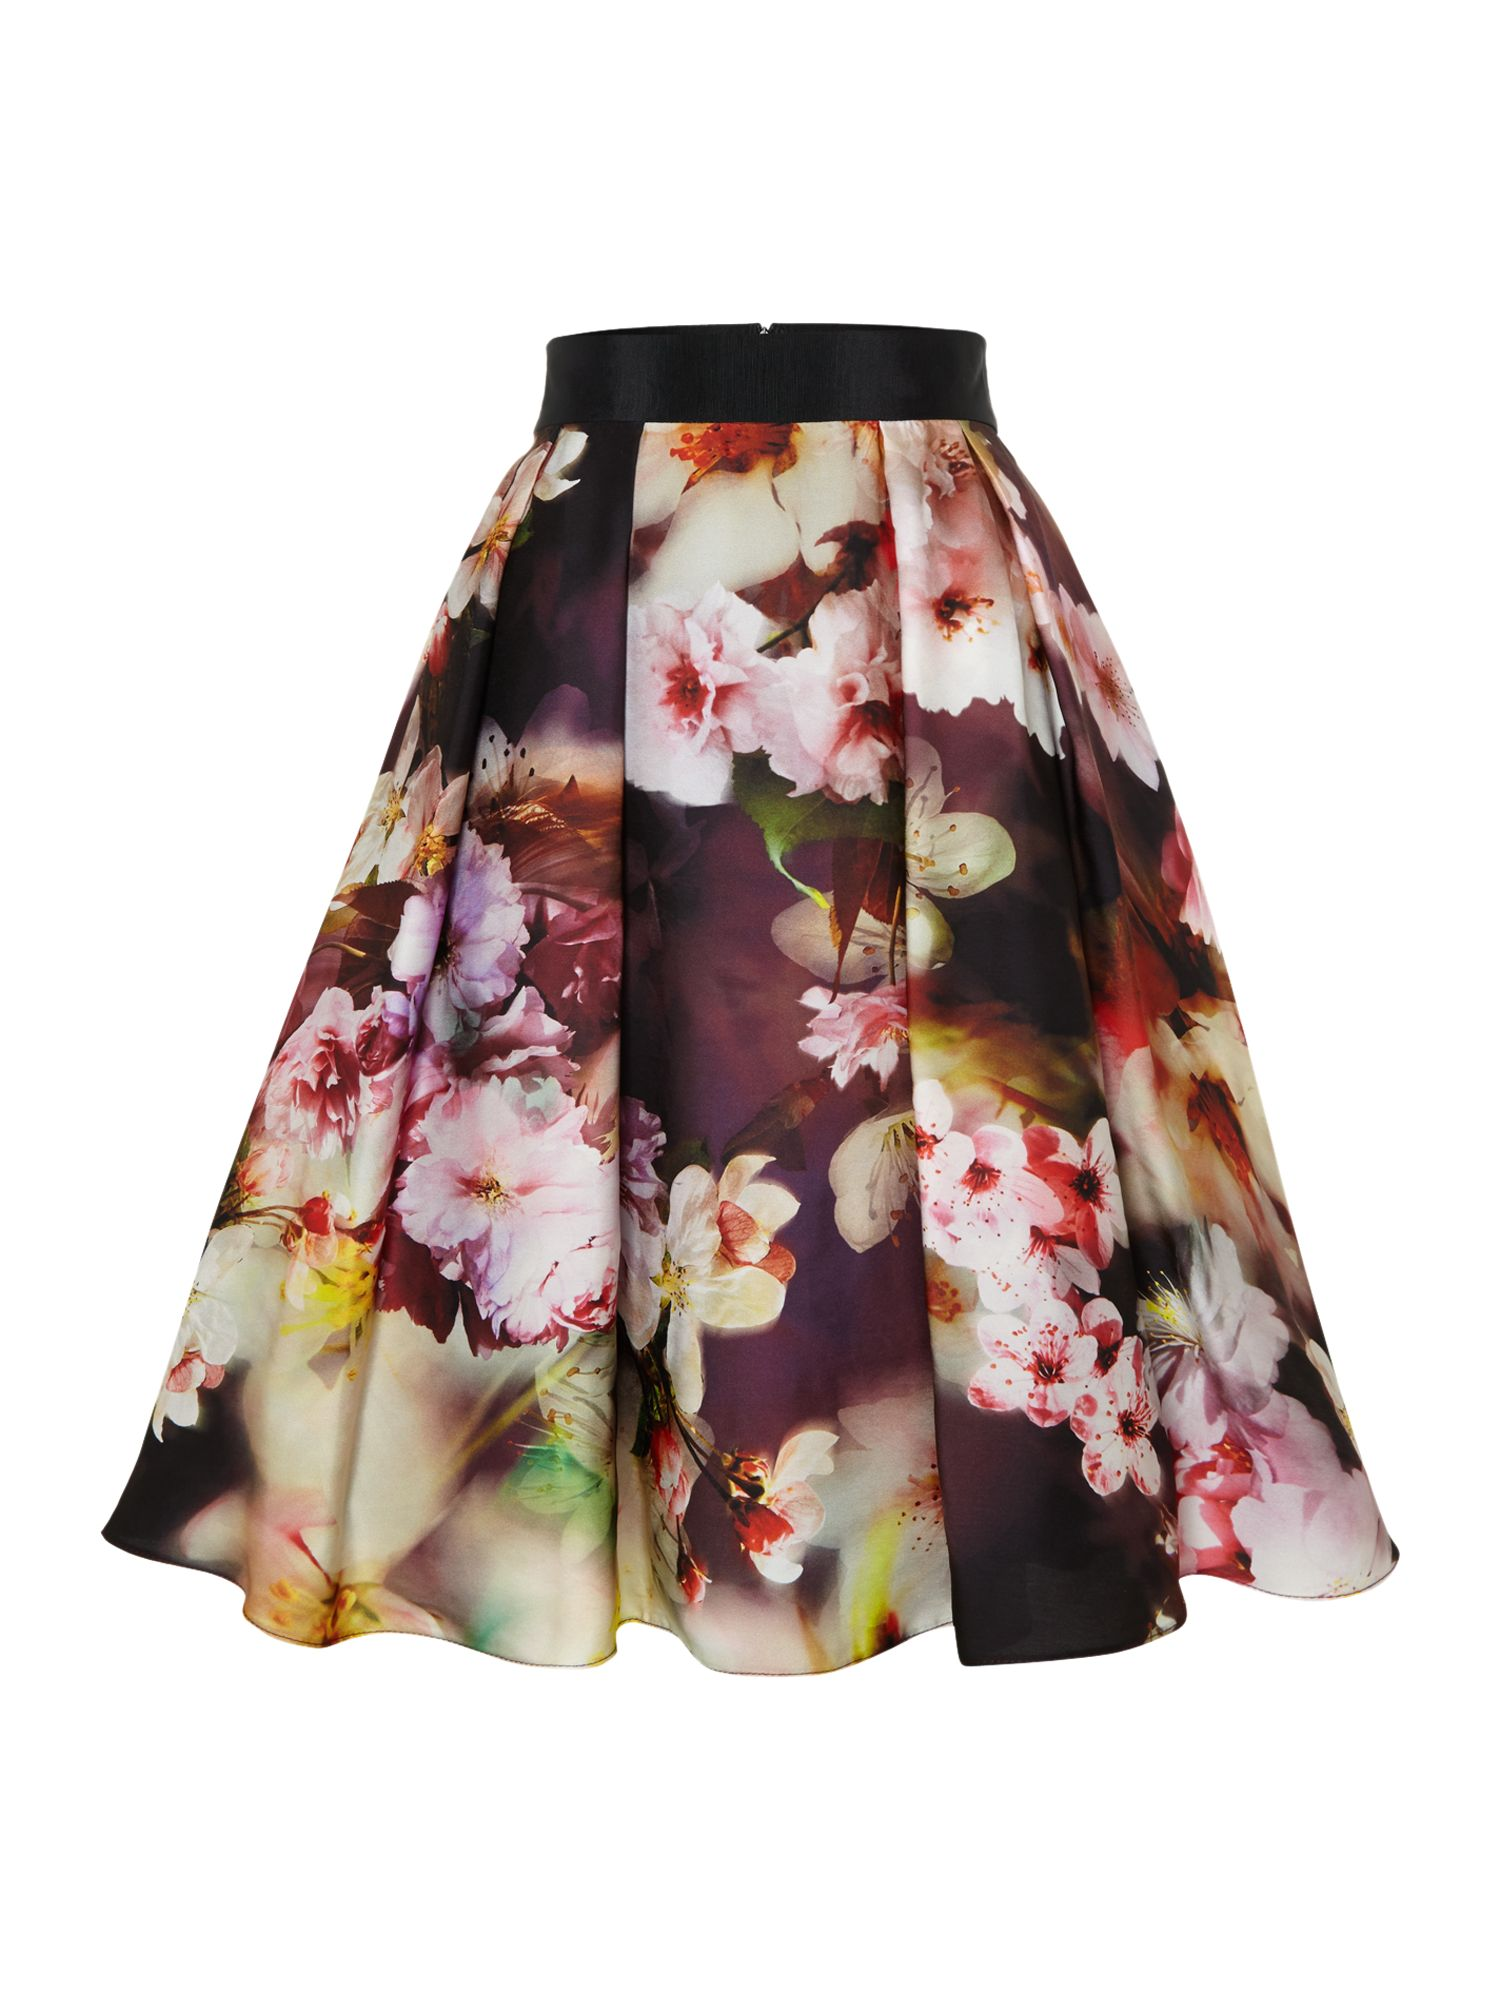 Fifties style floral skirt